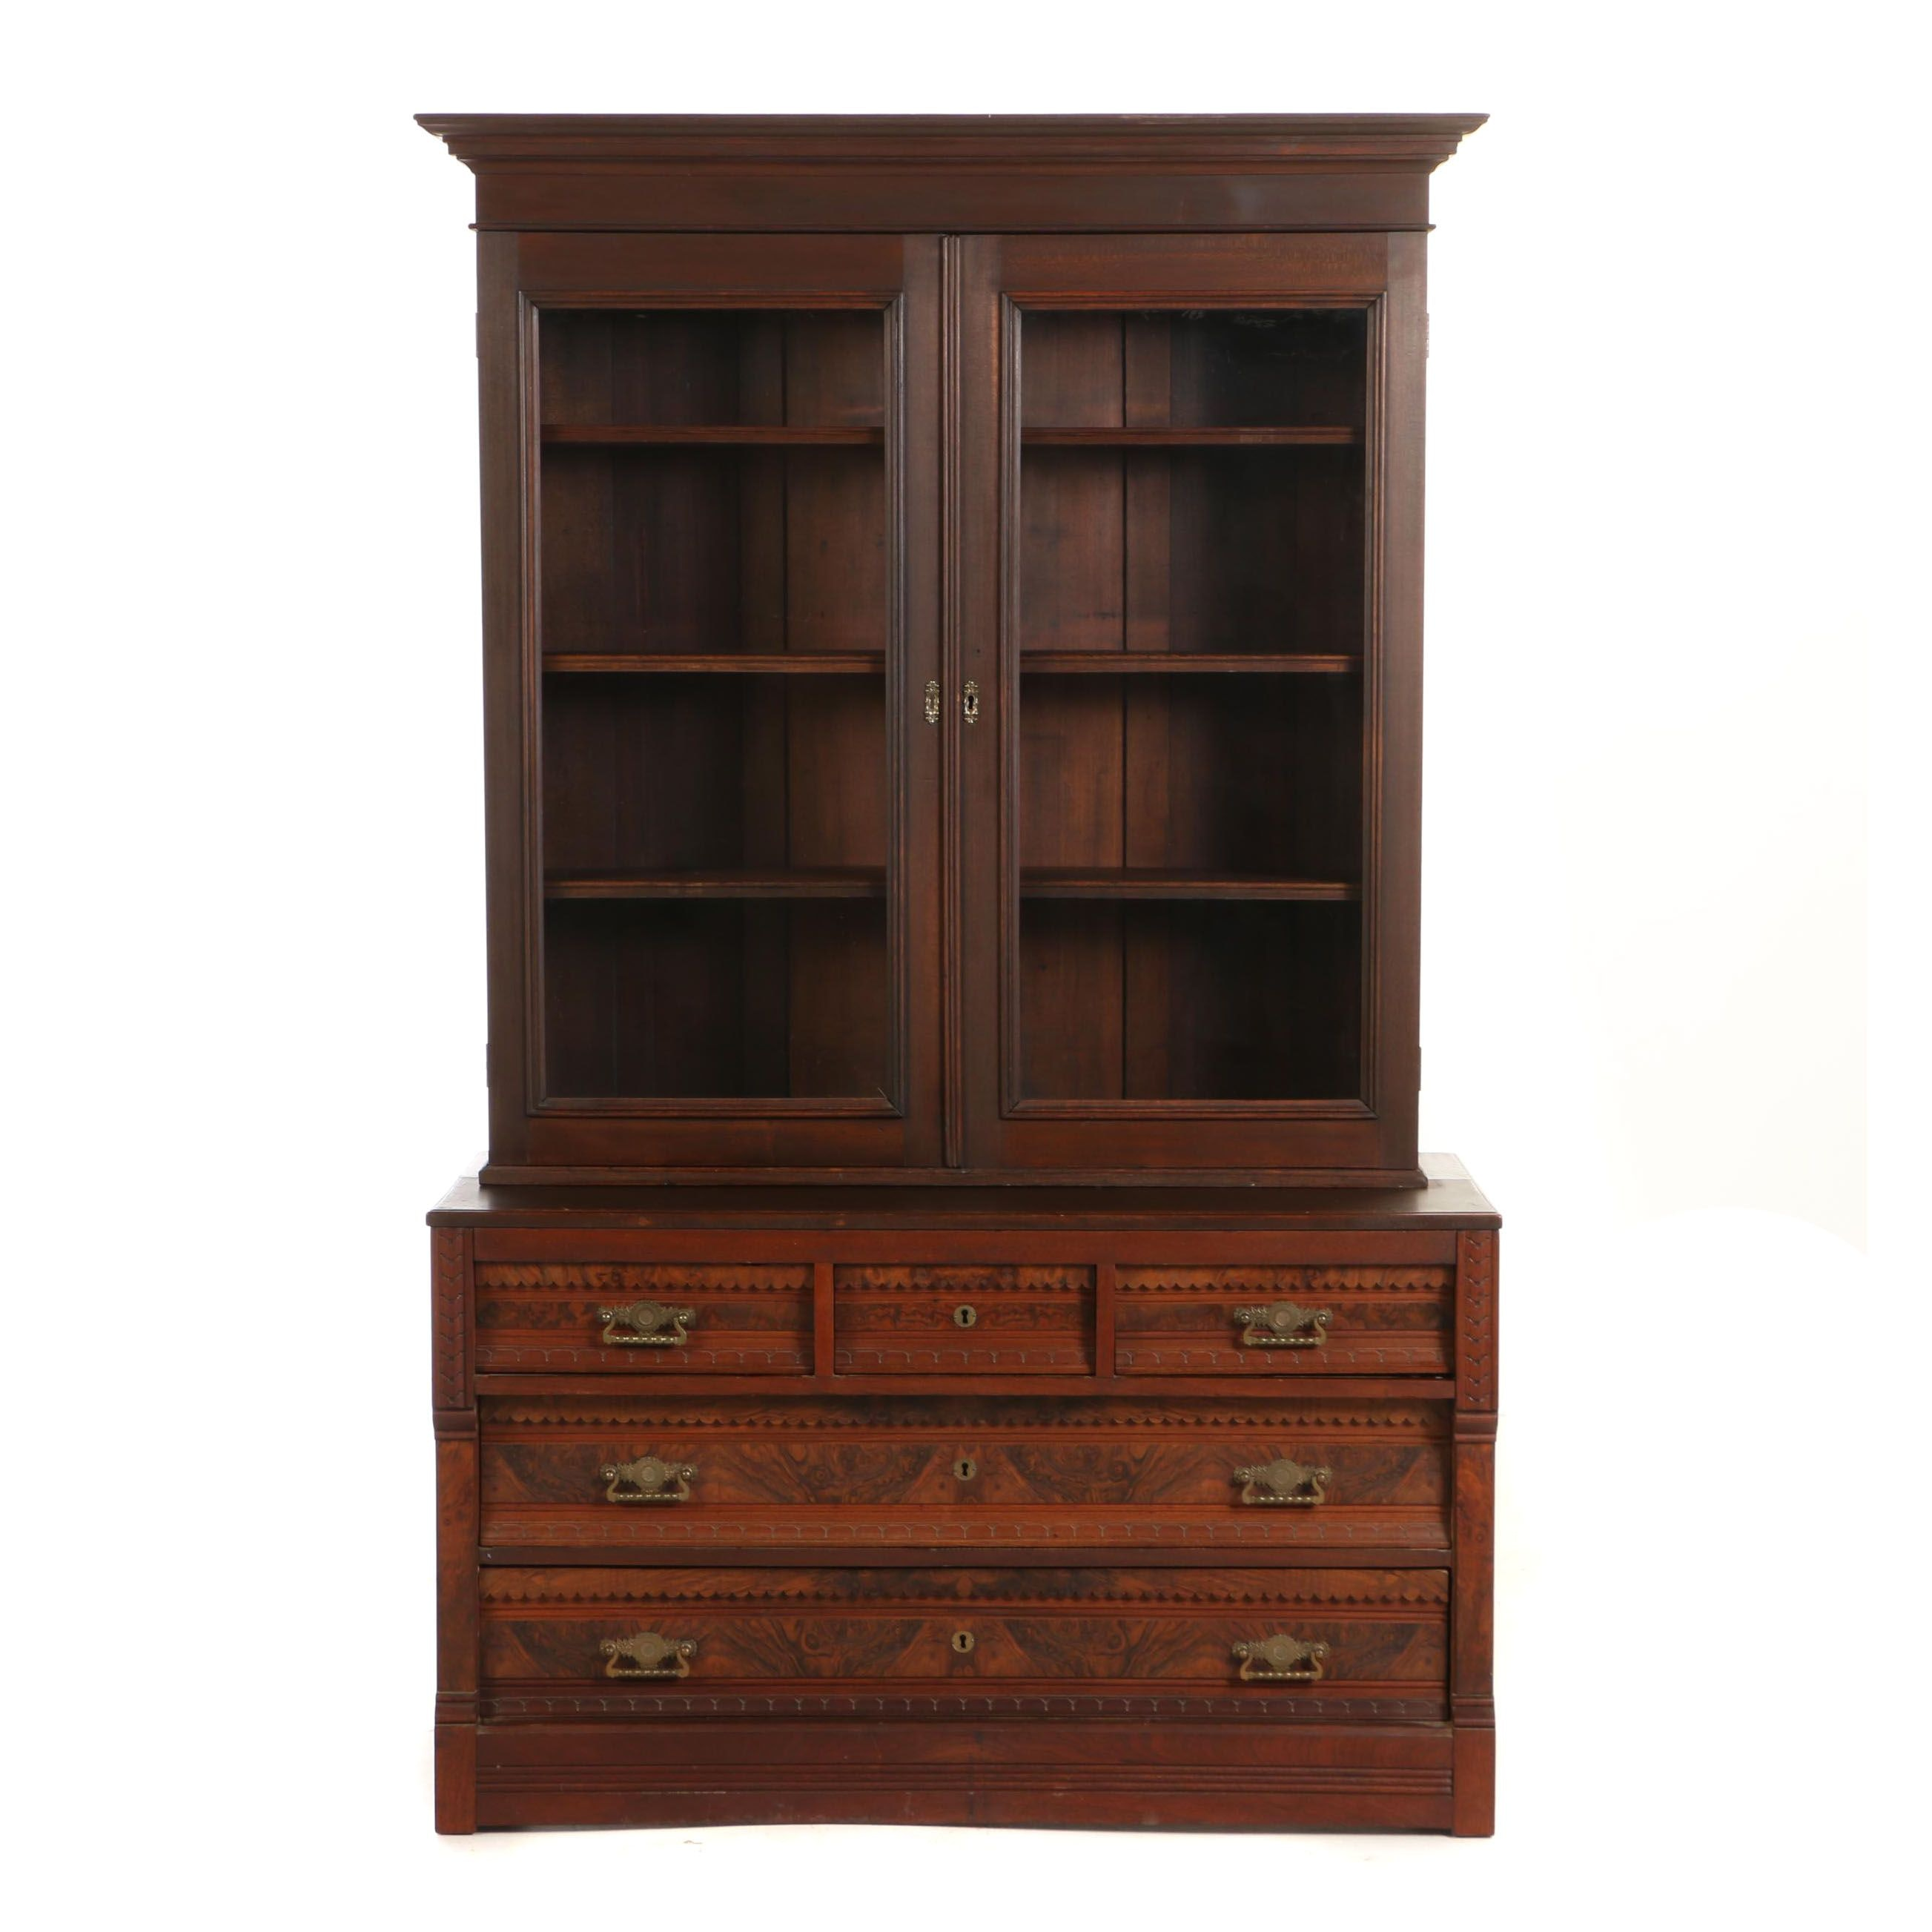 Victorian Cherrywood, Walnut & Burl Walnut Bookcase-on-Chest, Late 19th Century